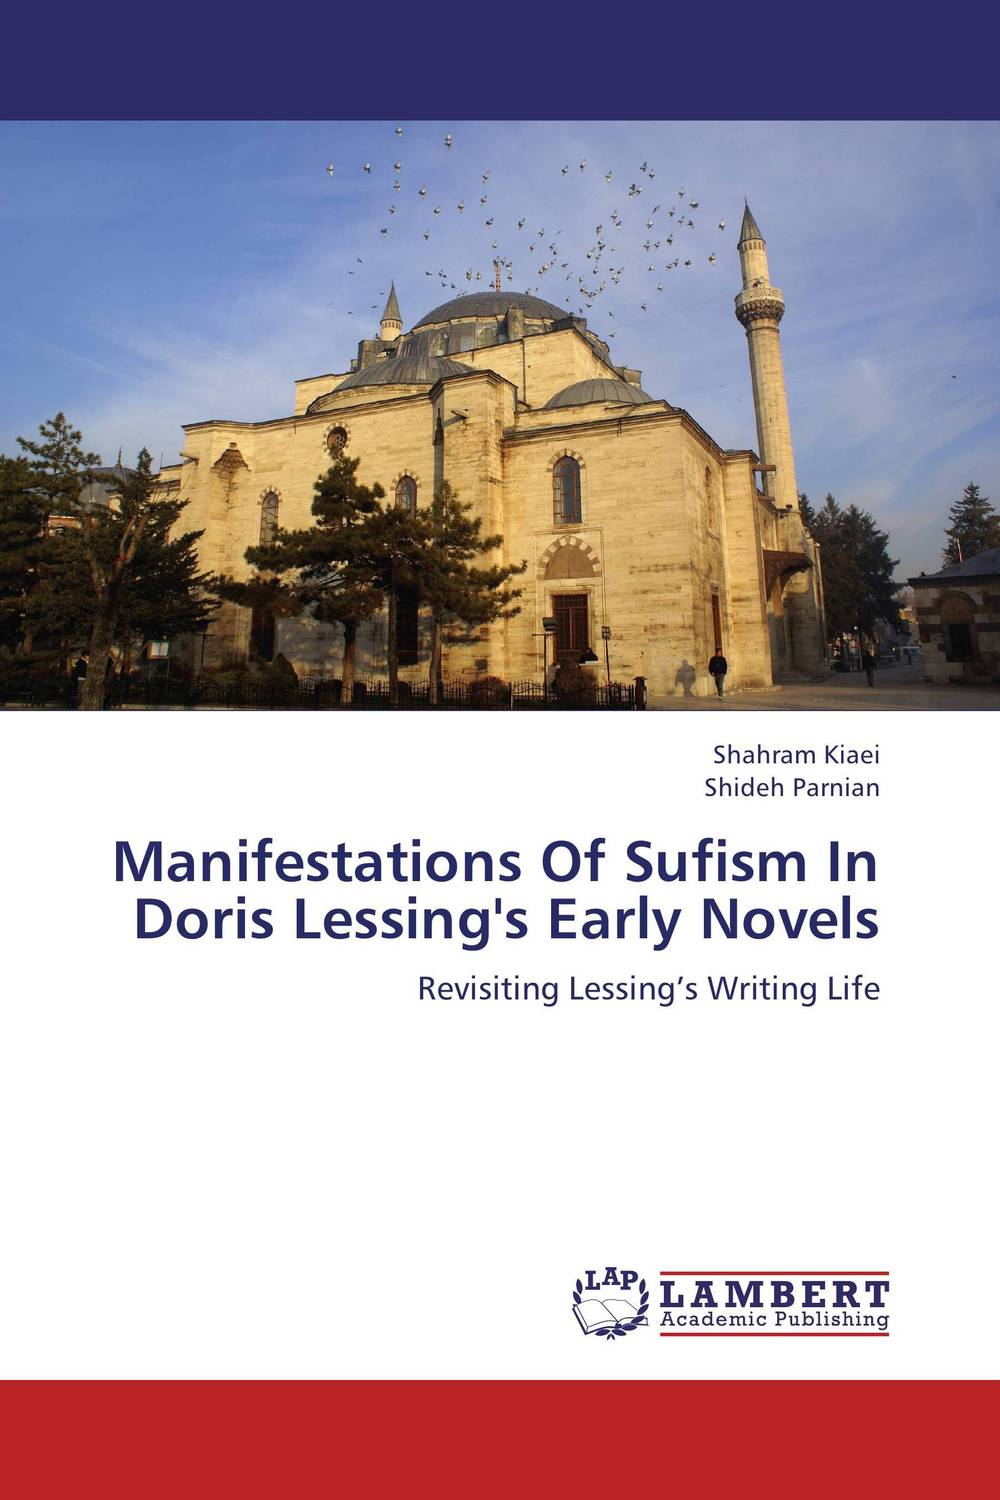 Manifestations Of Sufism In Doris Lessing's Early Novels early works i